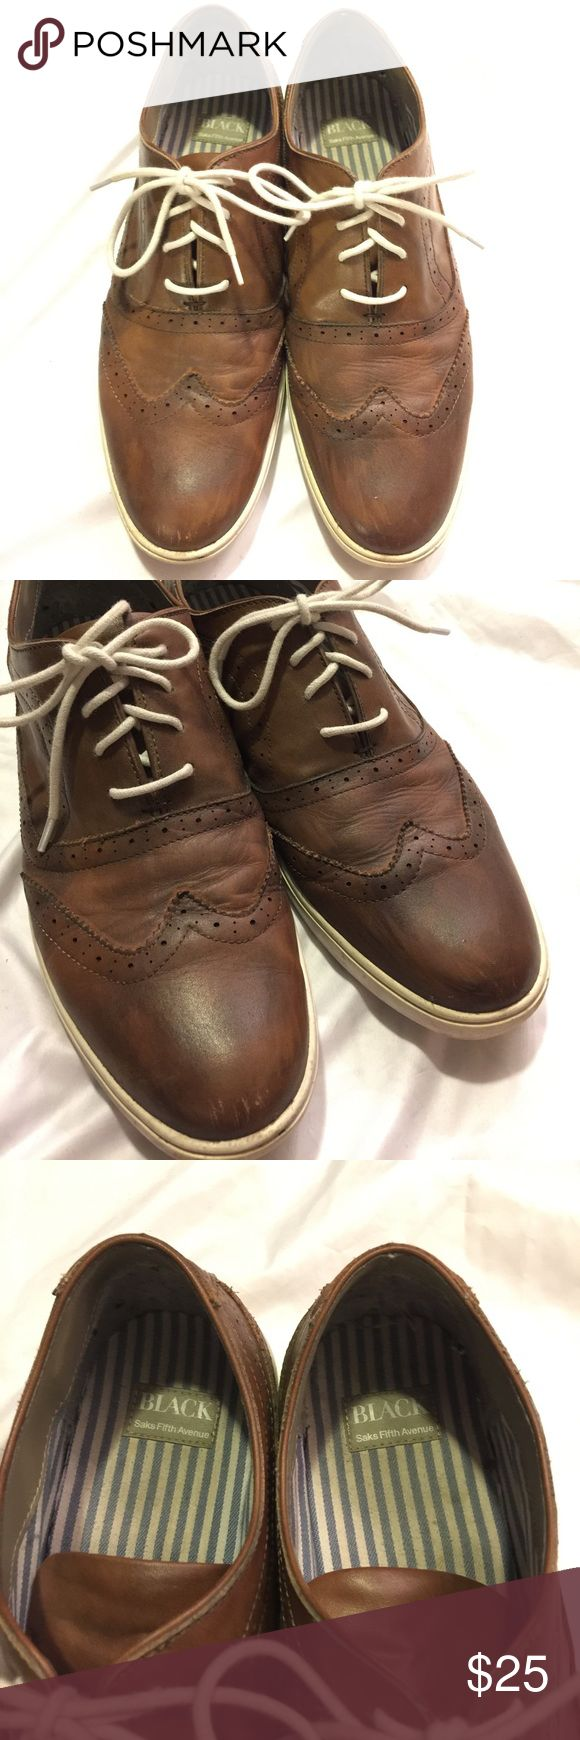 Saks Fifth Ave Men's Brown Leather Shoes Sz 11.5 Saks Fifth Avenue Black Label Men's casual brown leather shoes. Size 11.5 but runs slightly large and fits more like a true 12... Used condition but still had a lot of life left. Saks Fifth Avenue Black Label Shoes Oxfords & Derbys